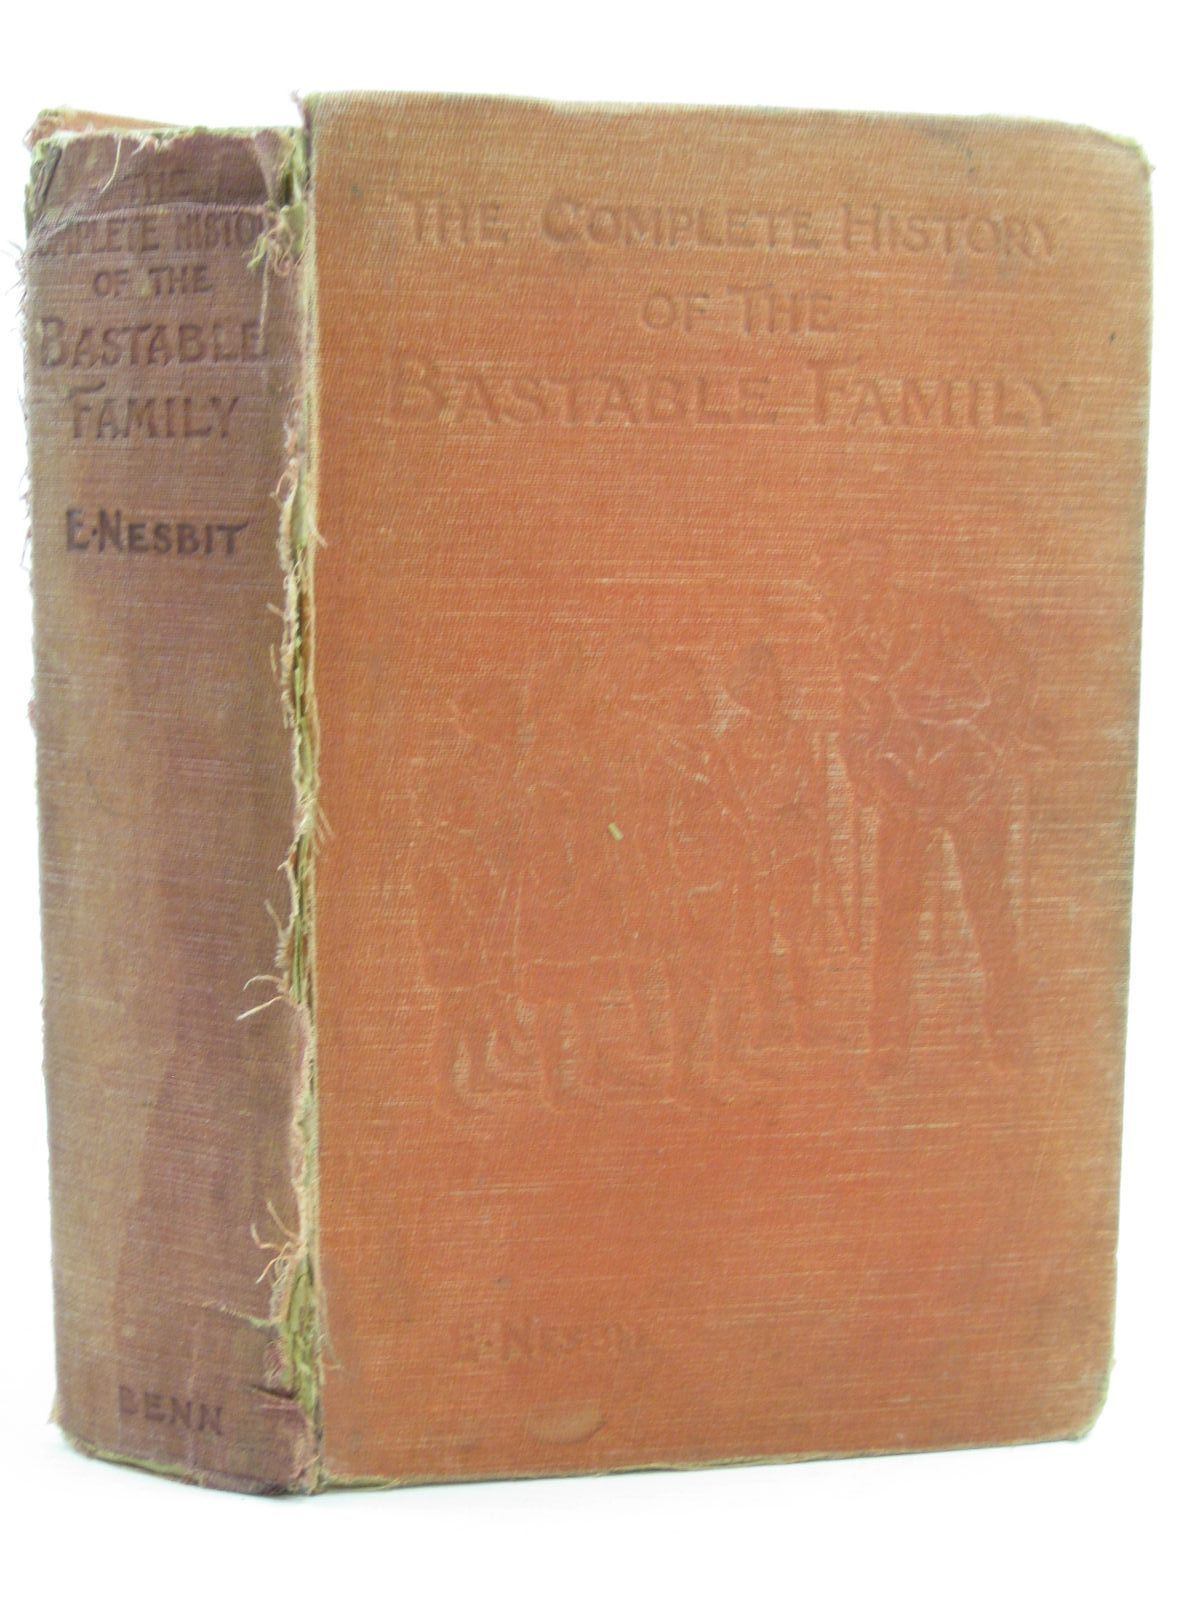 Photo of THE COMPLETE HISTORY OF THE BASTABLE FAMILY written by Nesbit, E. illustrated by Blampied, Edmund<br />et al., published by Ernest Benn Limited (STOCK CODE: 1507401)  for sale by Stella & Rose's Books